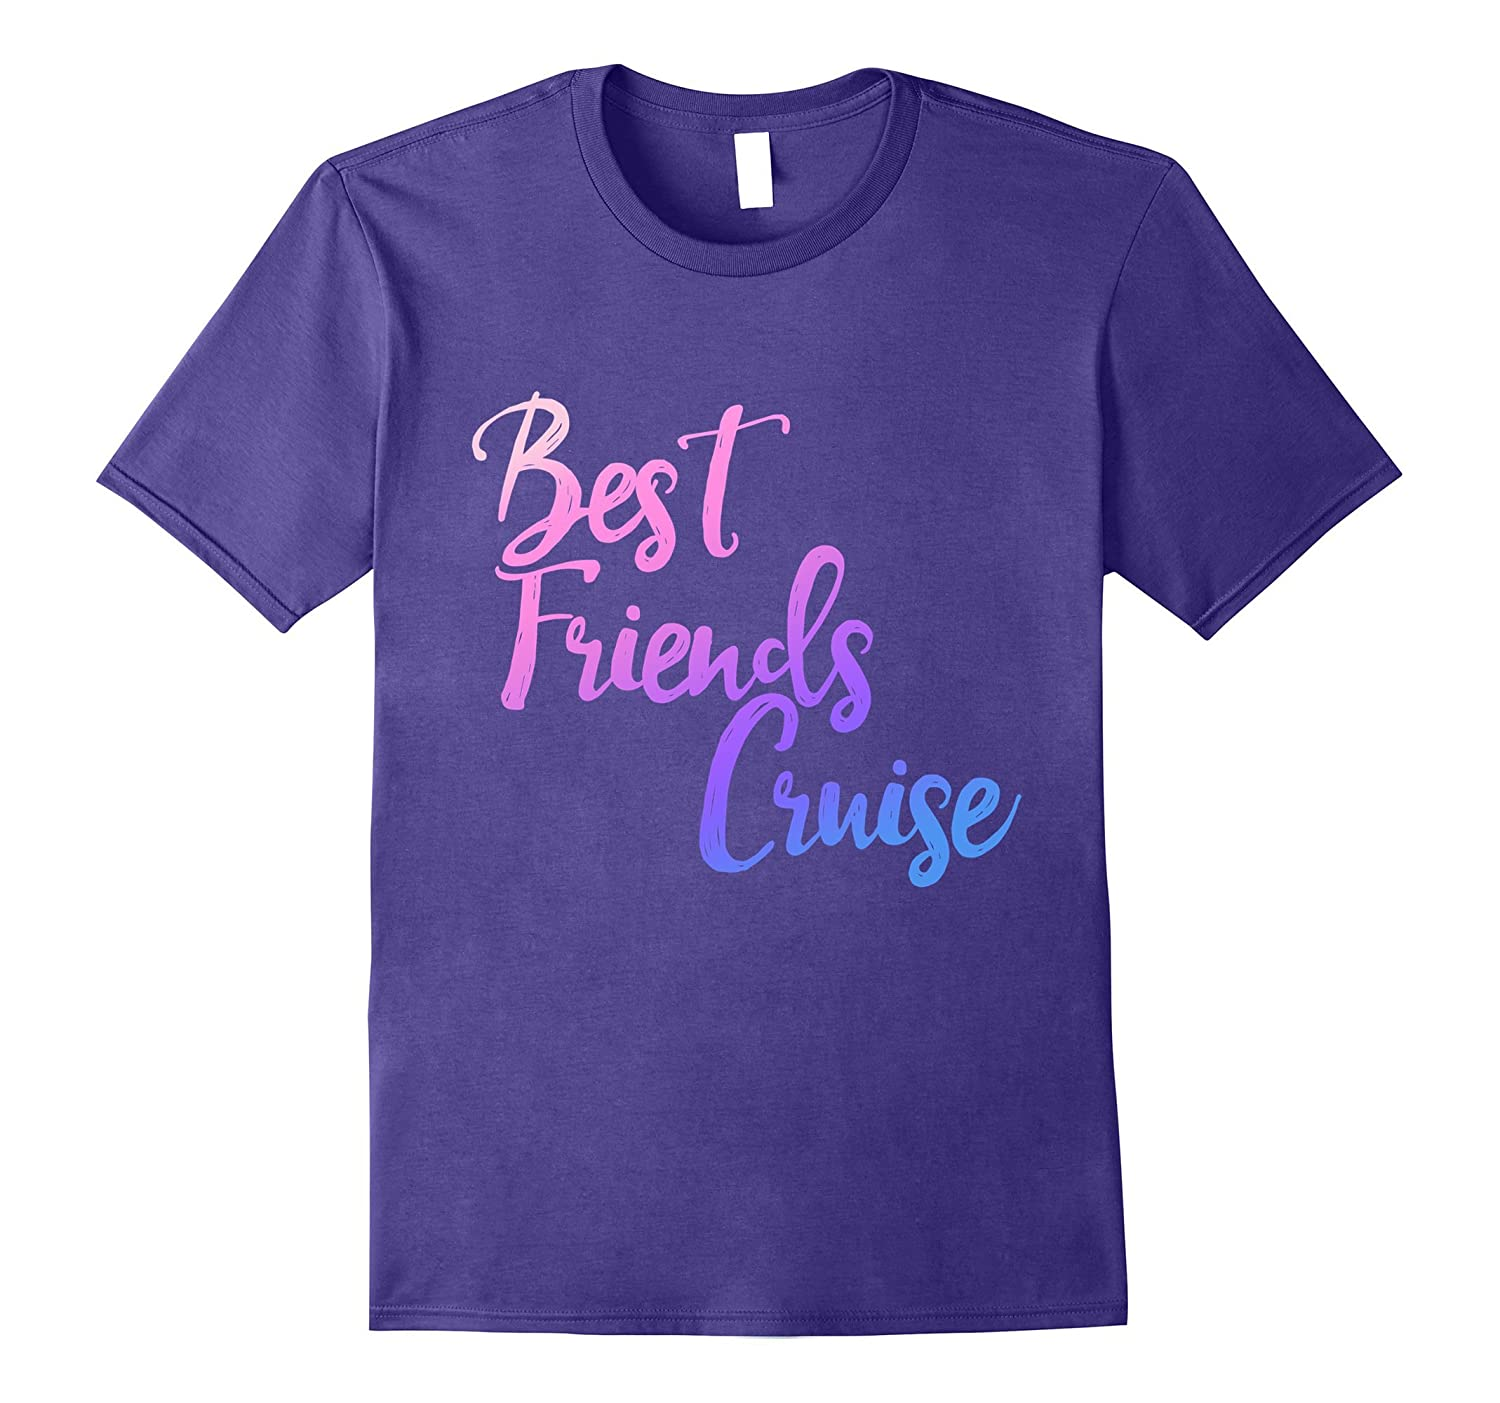 Best friends cruise t-shirt bff cruise ship vacation tee-FL